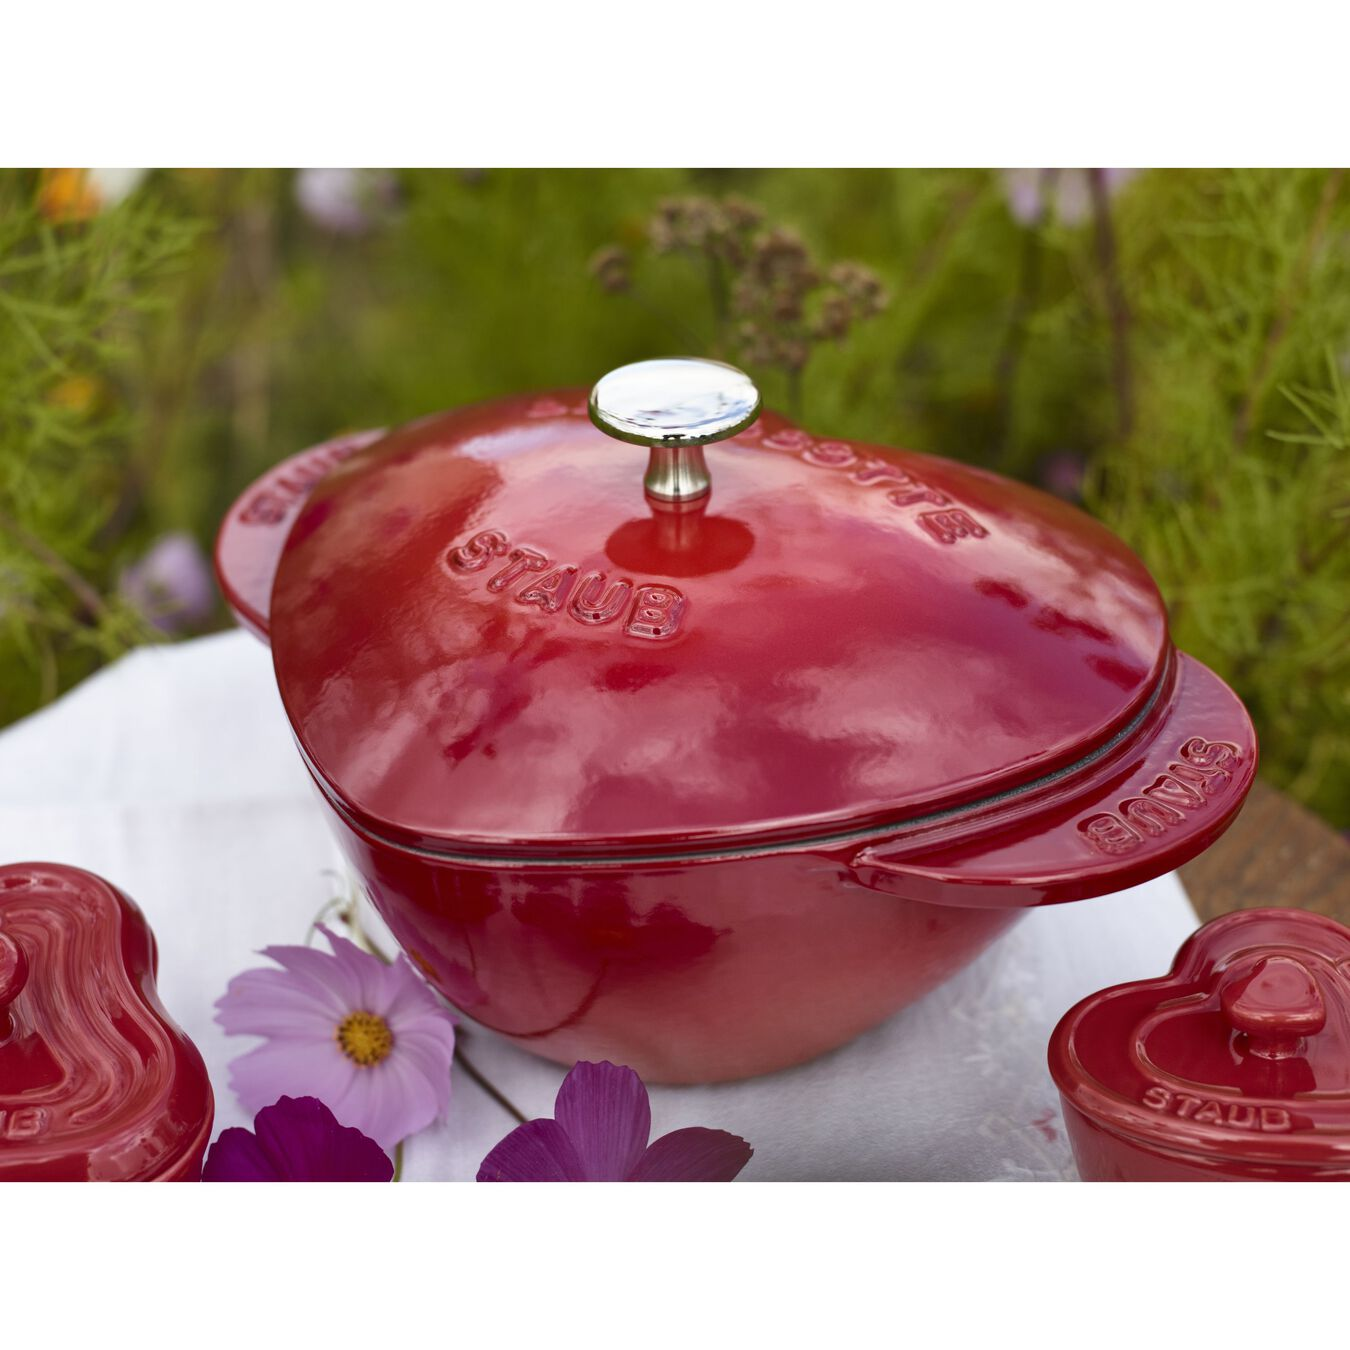 Cocotte 20 cm, Herz, Kirsch-Rot, Gusseisen,,large 5